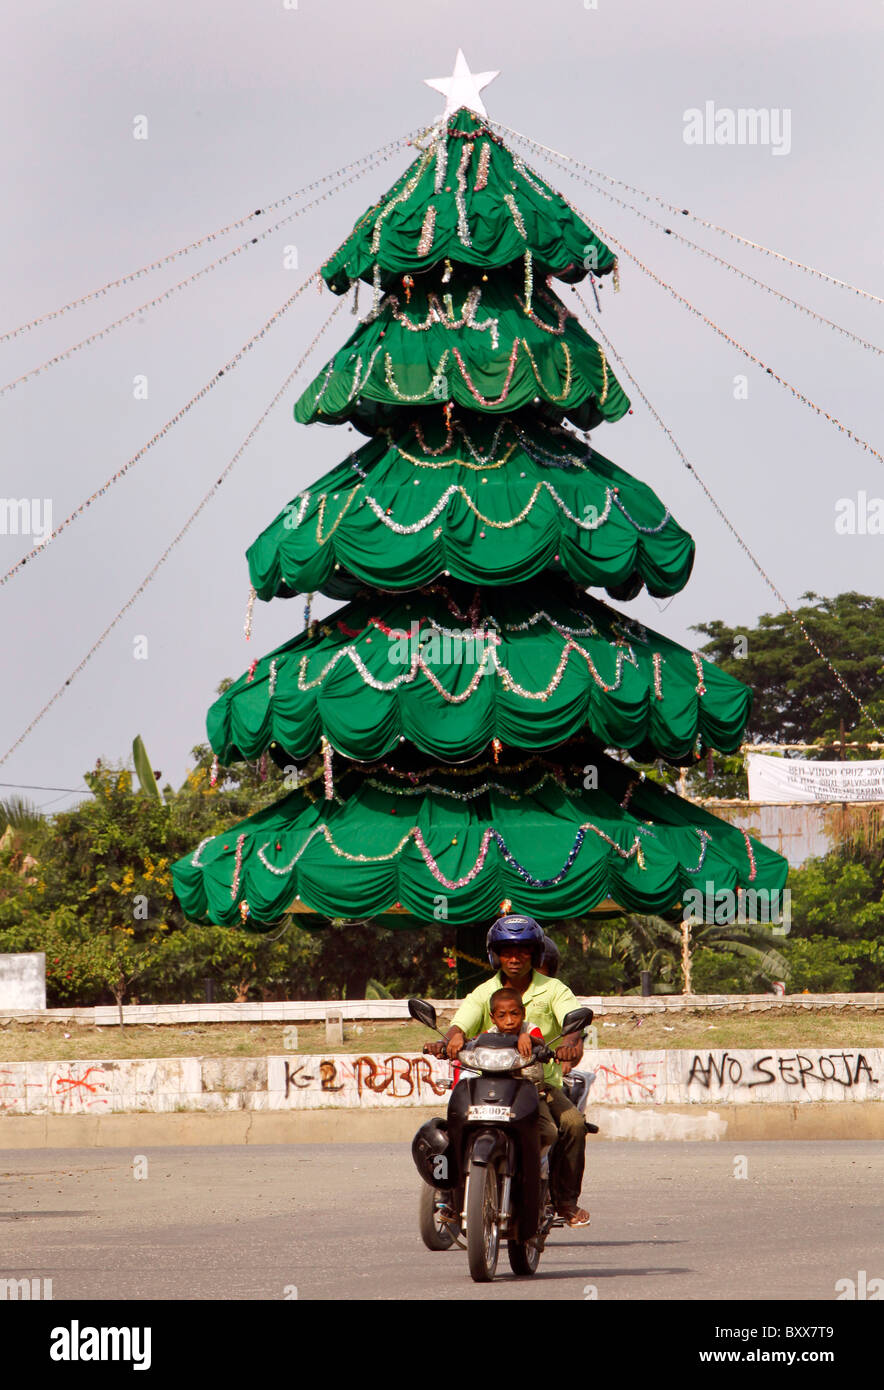 Christmas tree in the streets of Dili, capital of Timor Leste (East Timor) Stock Photo